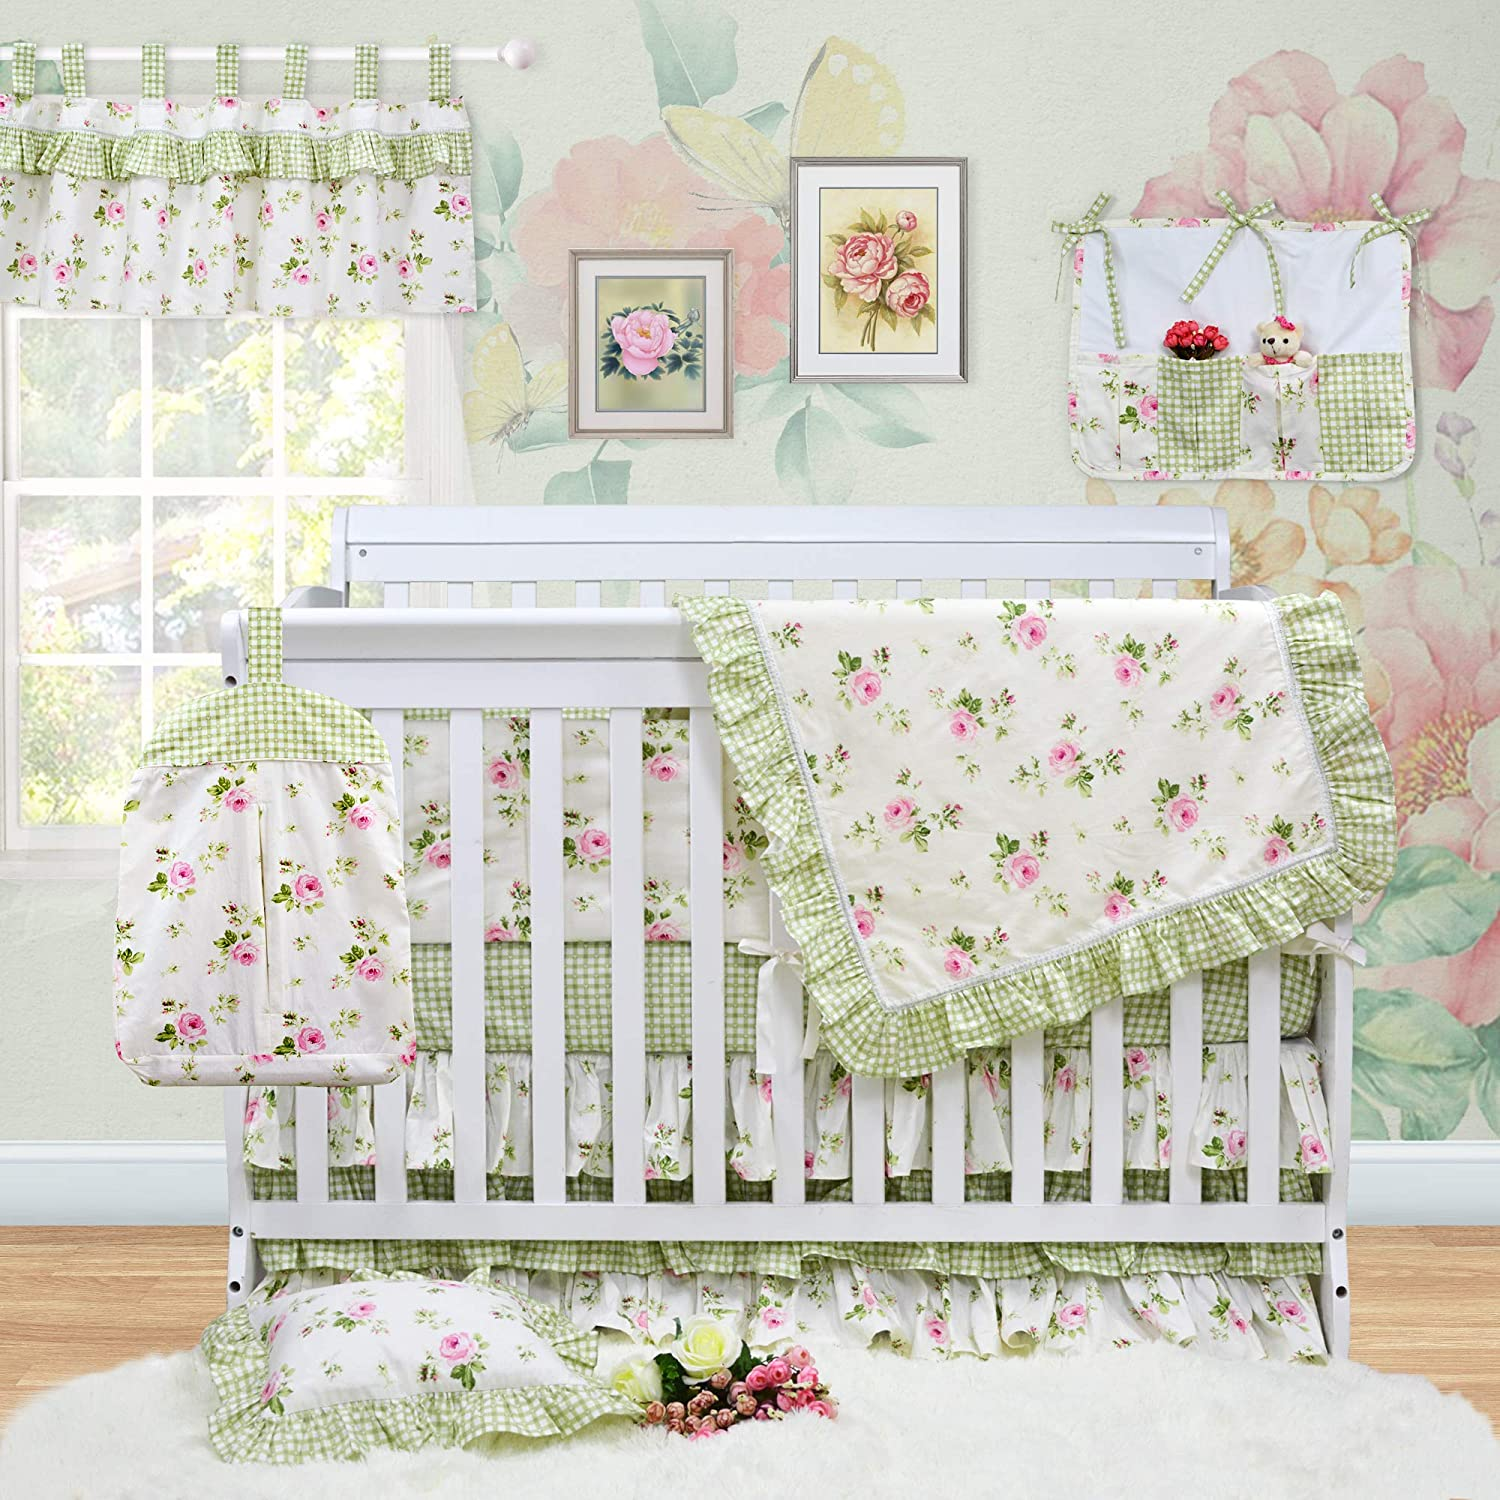 Brandream Floral Crib Bedding Sets for Girls with Bumpers Fairy Tale Charming Baby Nursery Bedding Green 100% Cotton, 11pcs Ideal